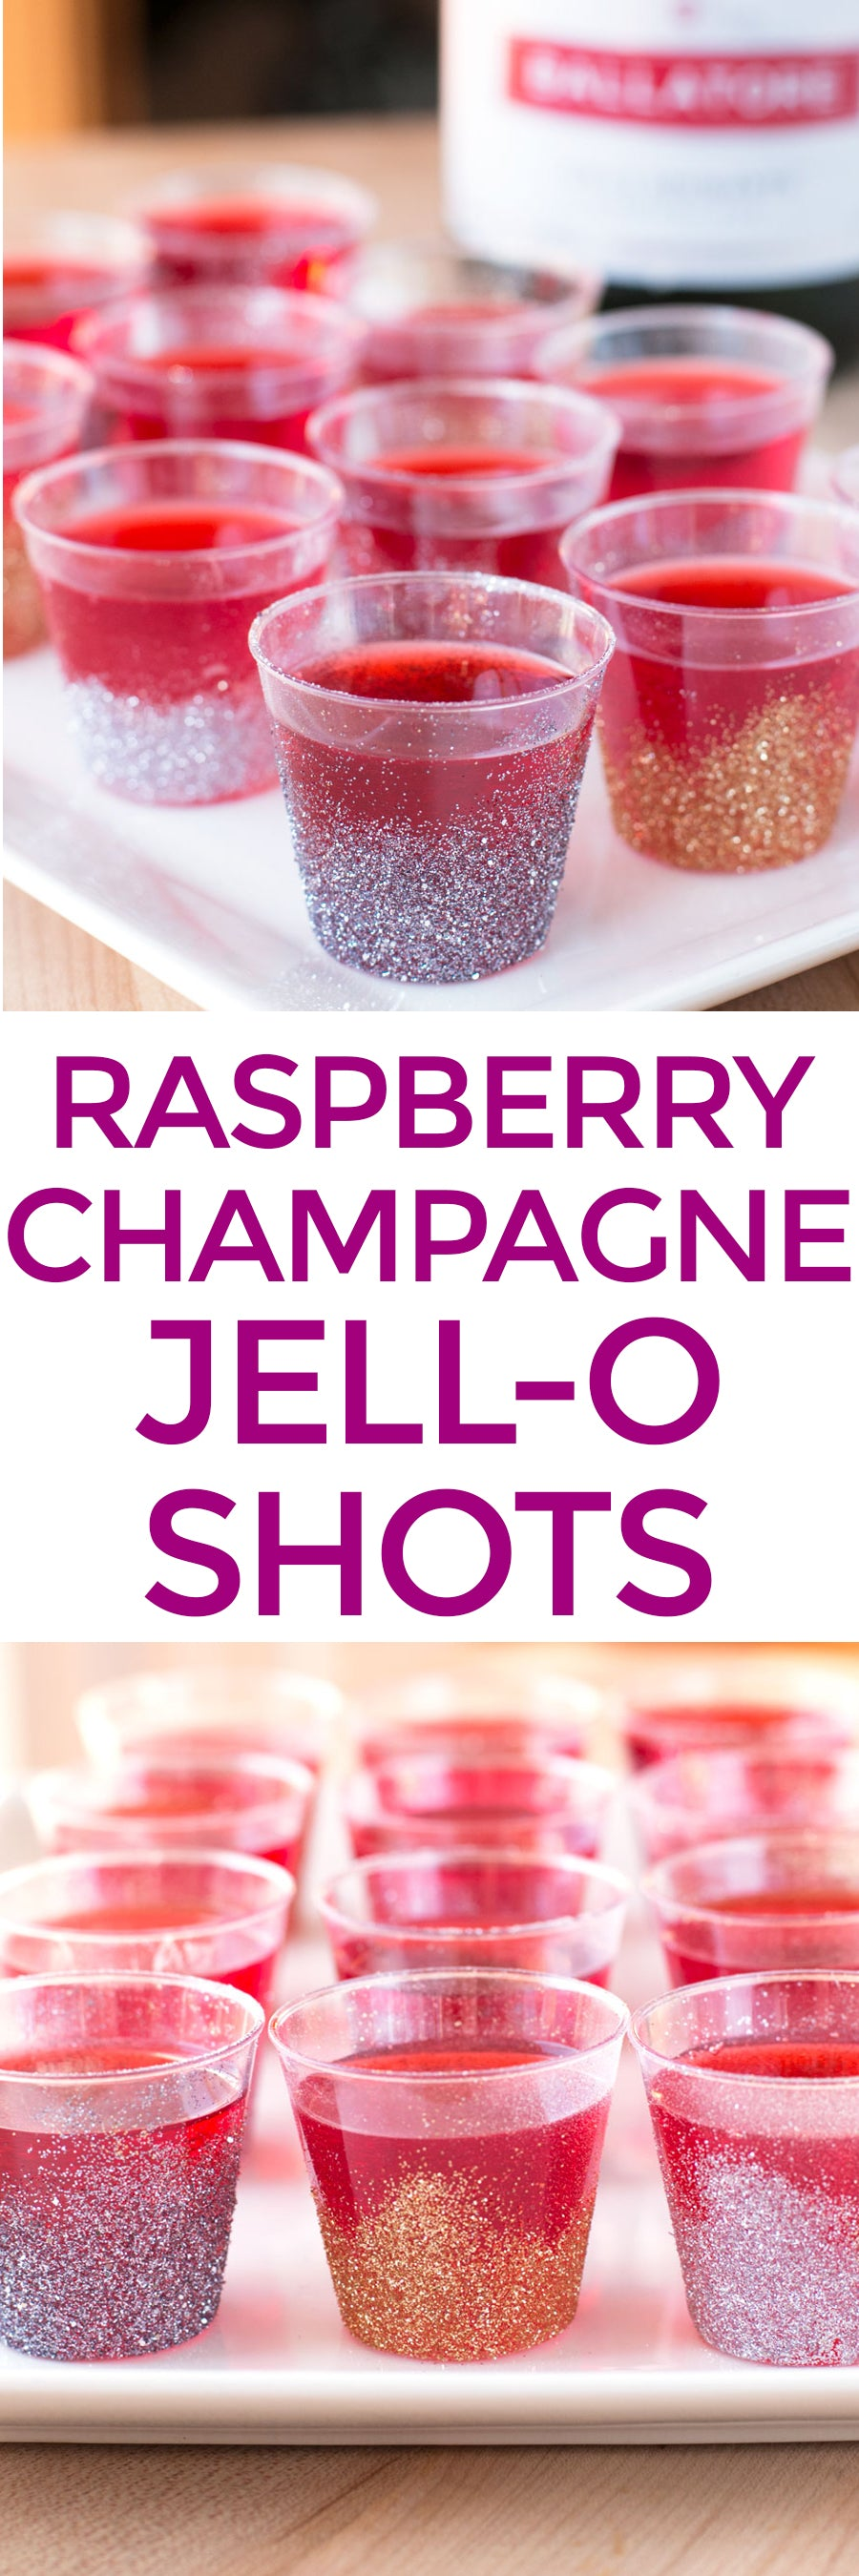 Raspberry Champagne Jell-O Shots | pigofthemonth.com #newyearseve #party #cocktail #recipe